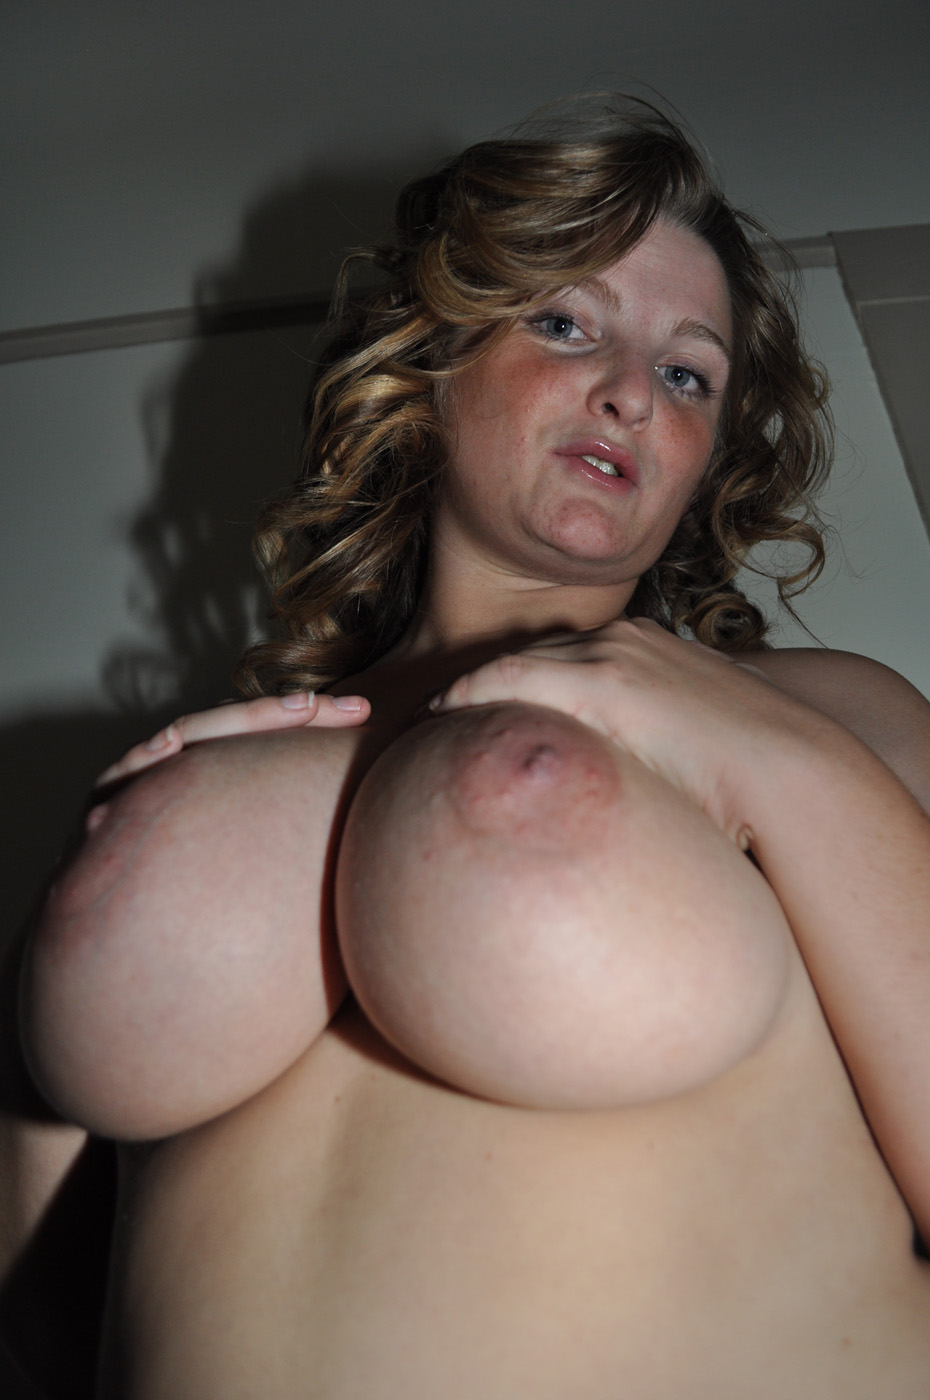 Big tits milf get dig on her ass 7